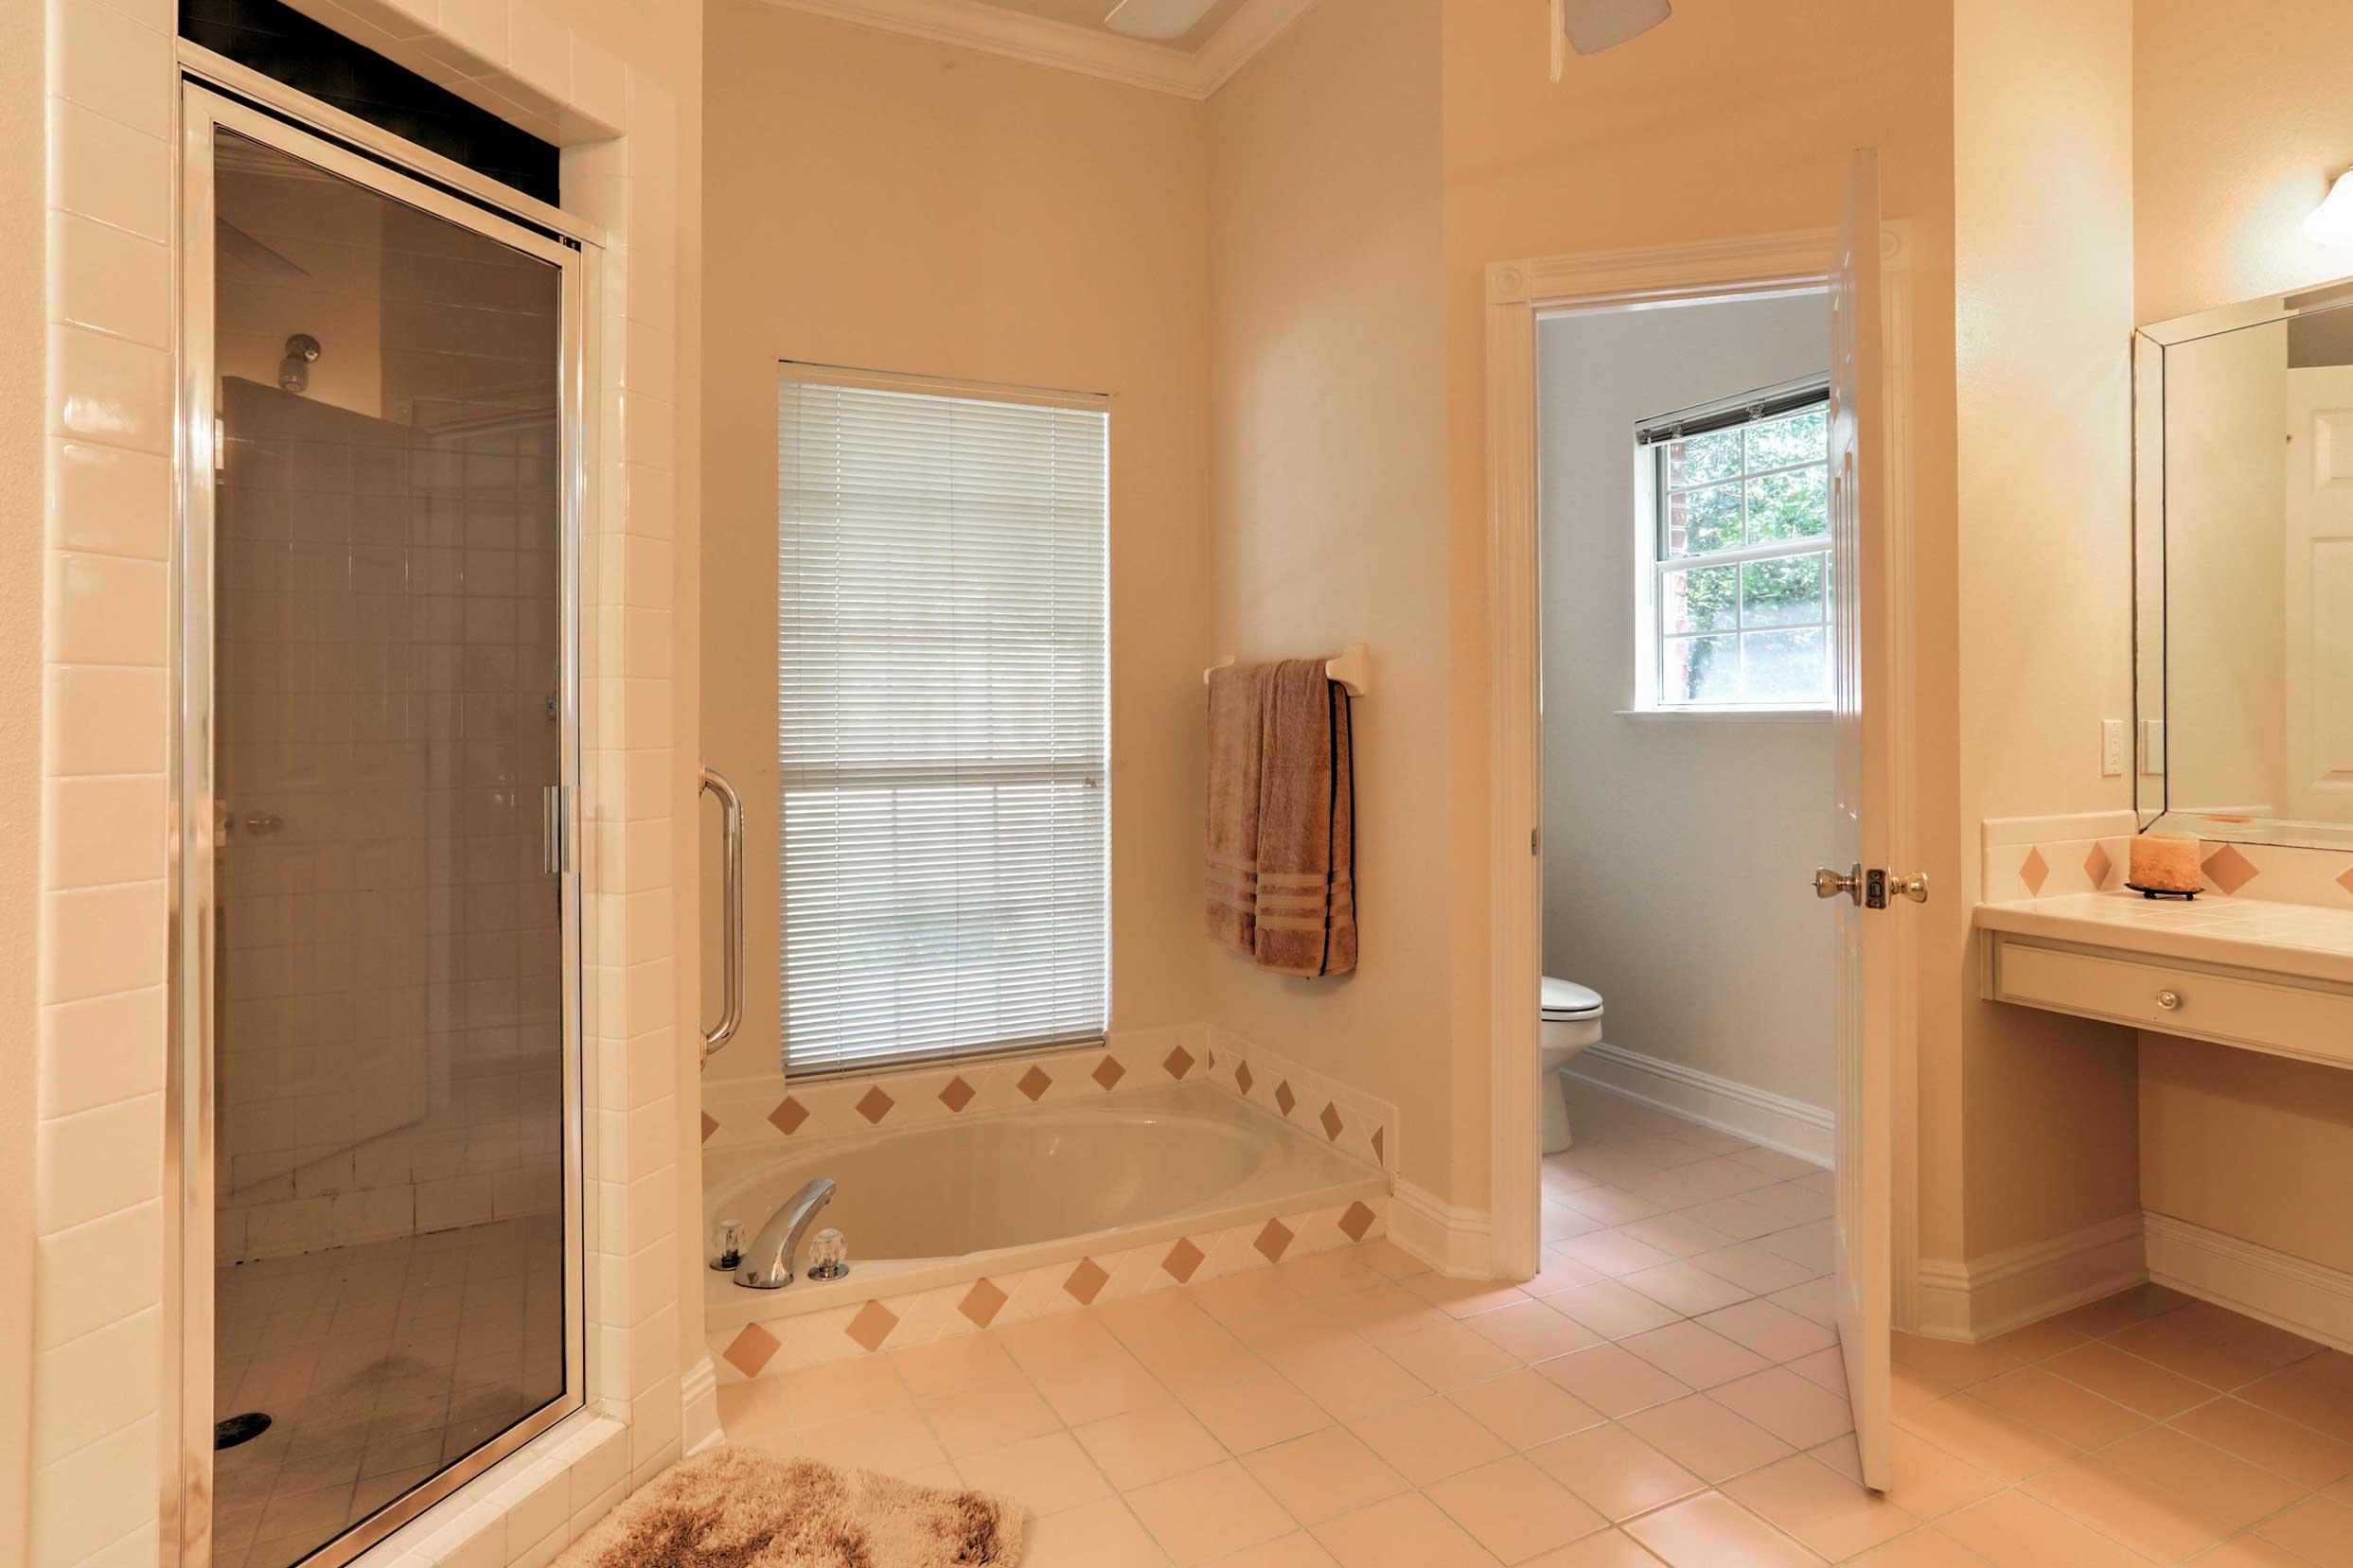 The en suite master bathroom offers a walk-in shower and  a bathtub.